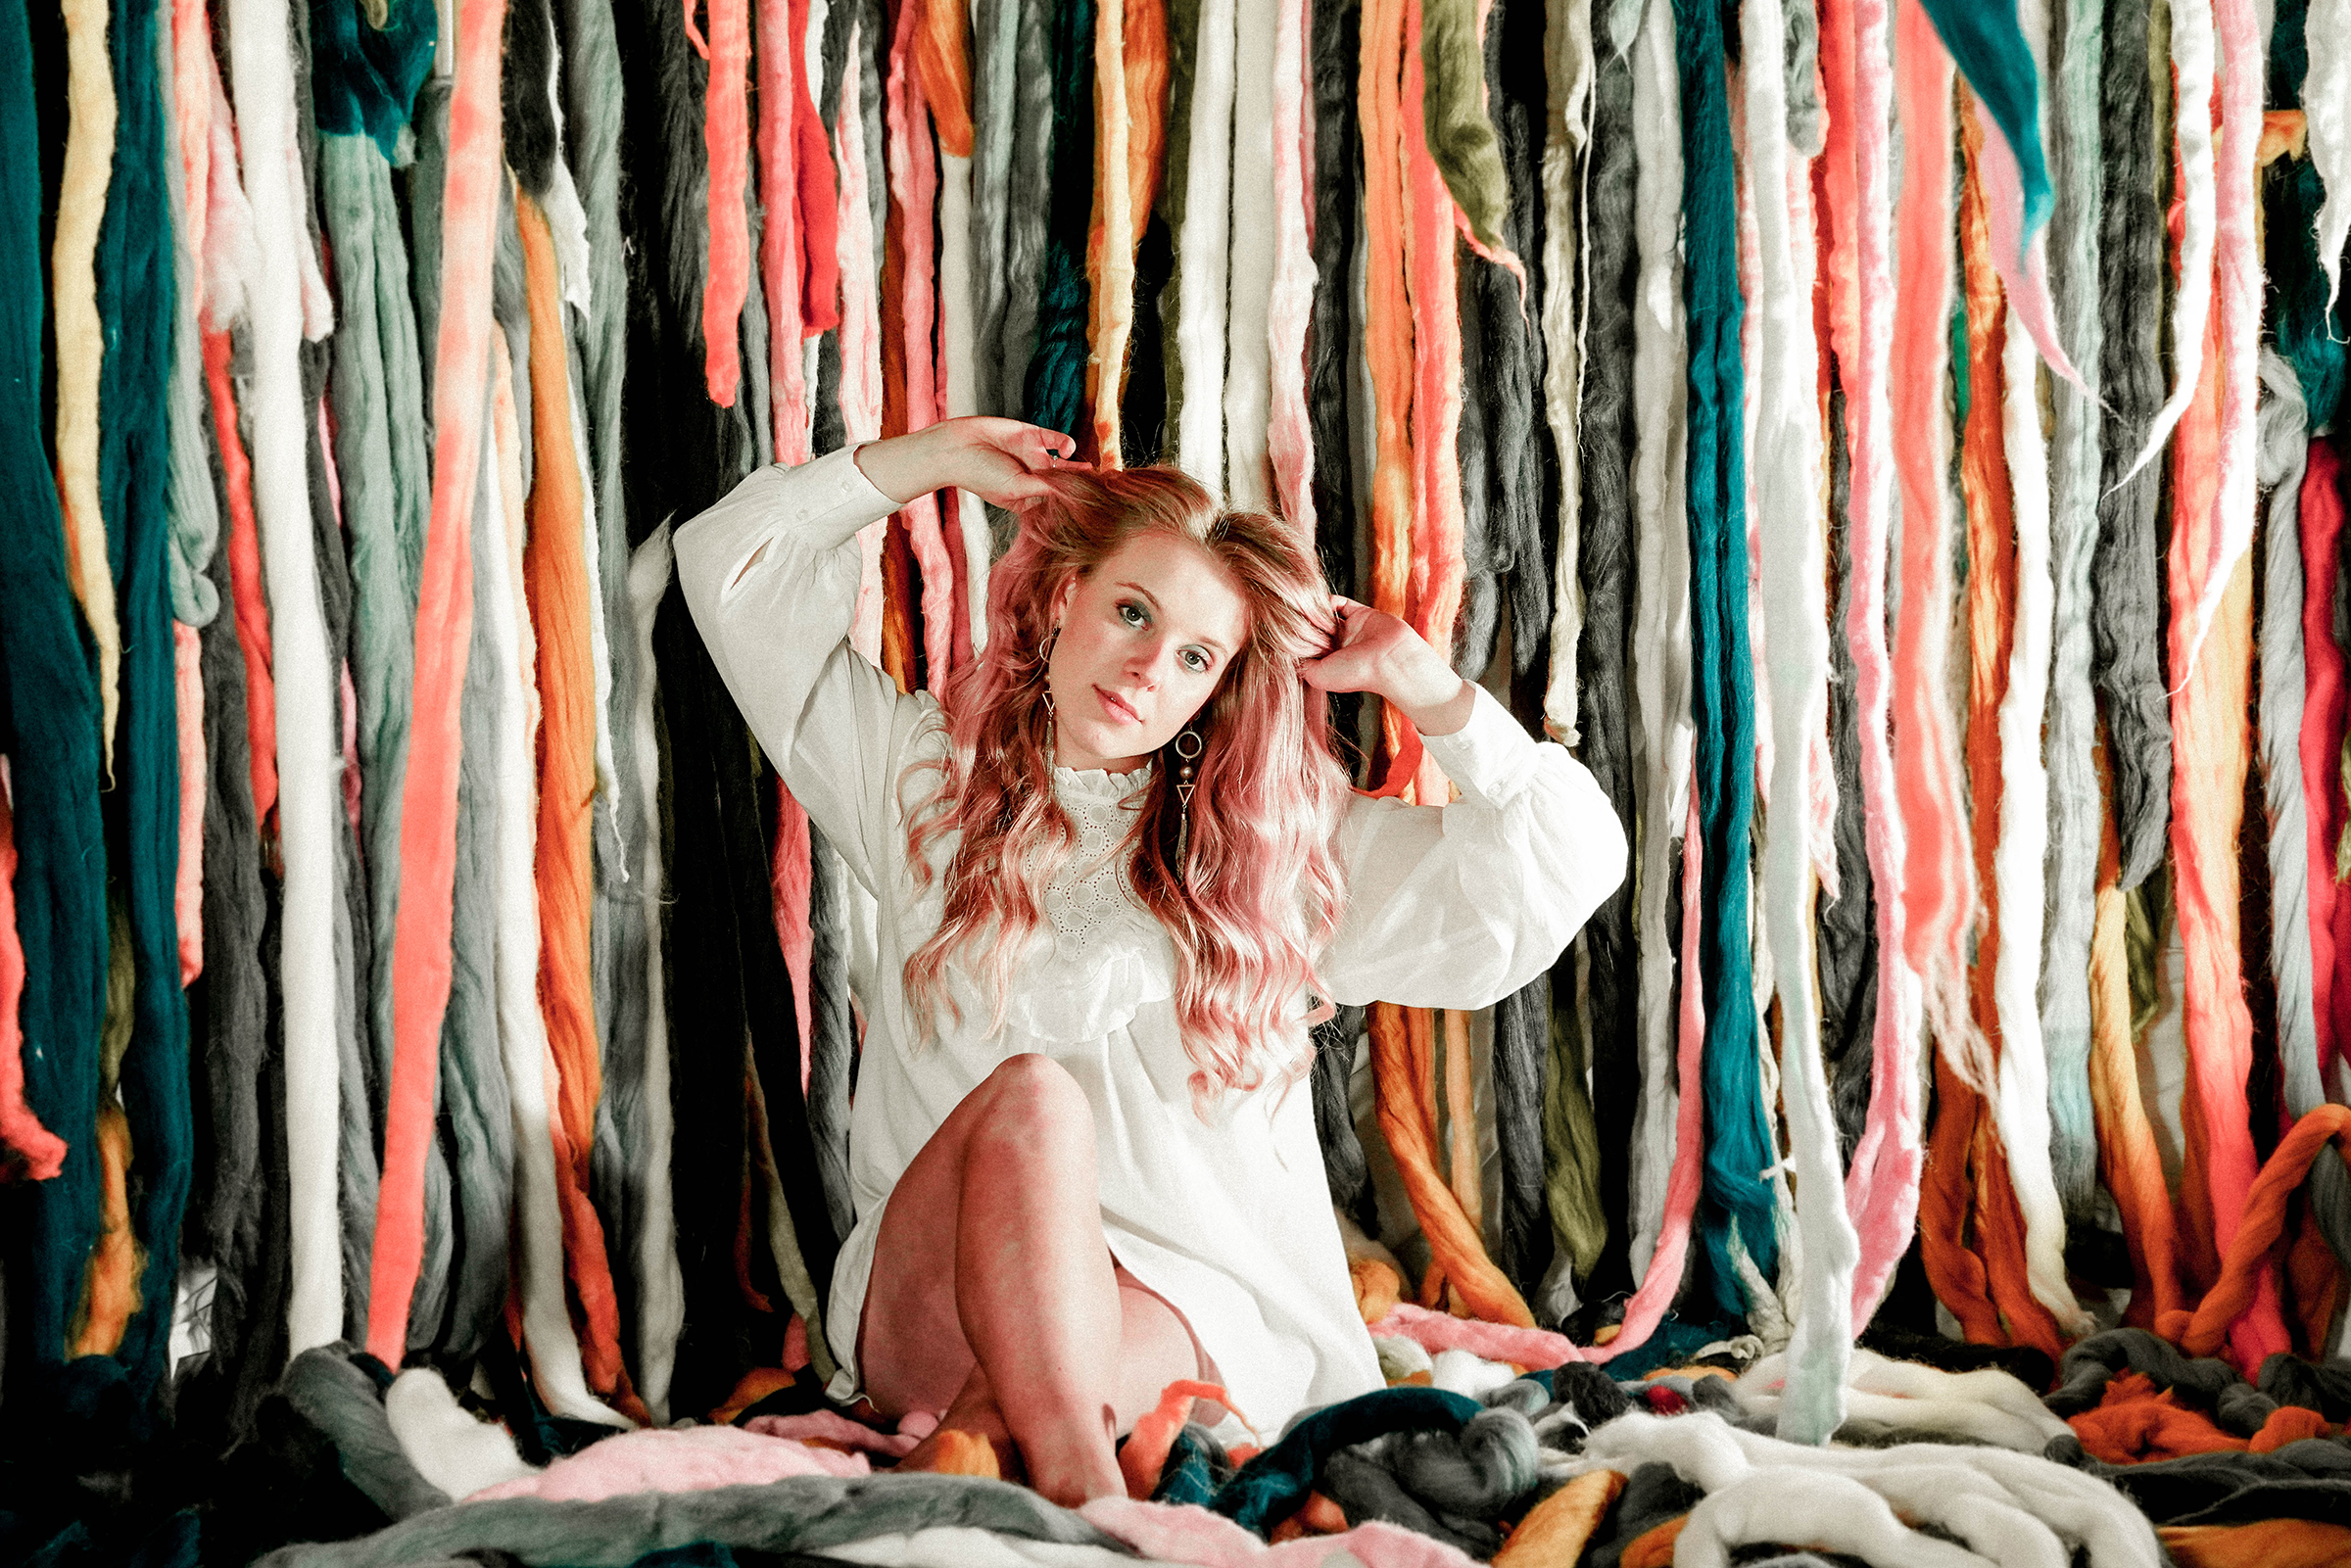 REBEKAH FITCH releases new single 'Loose Ends' - Listen Now